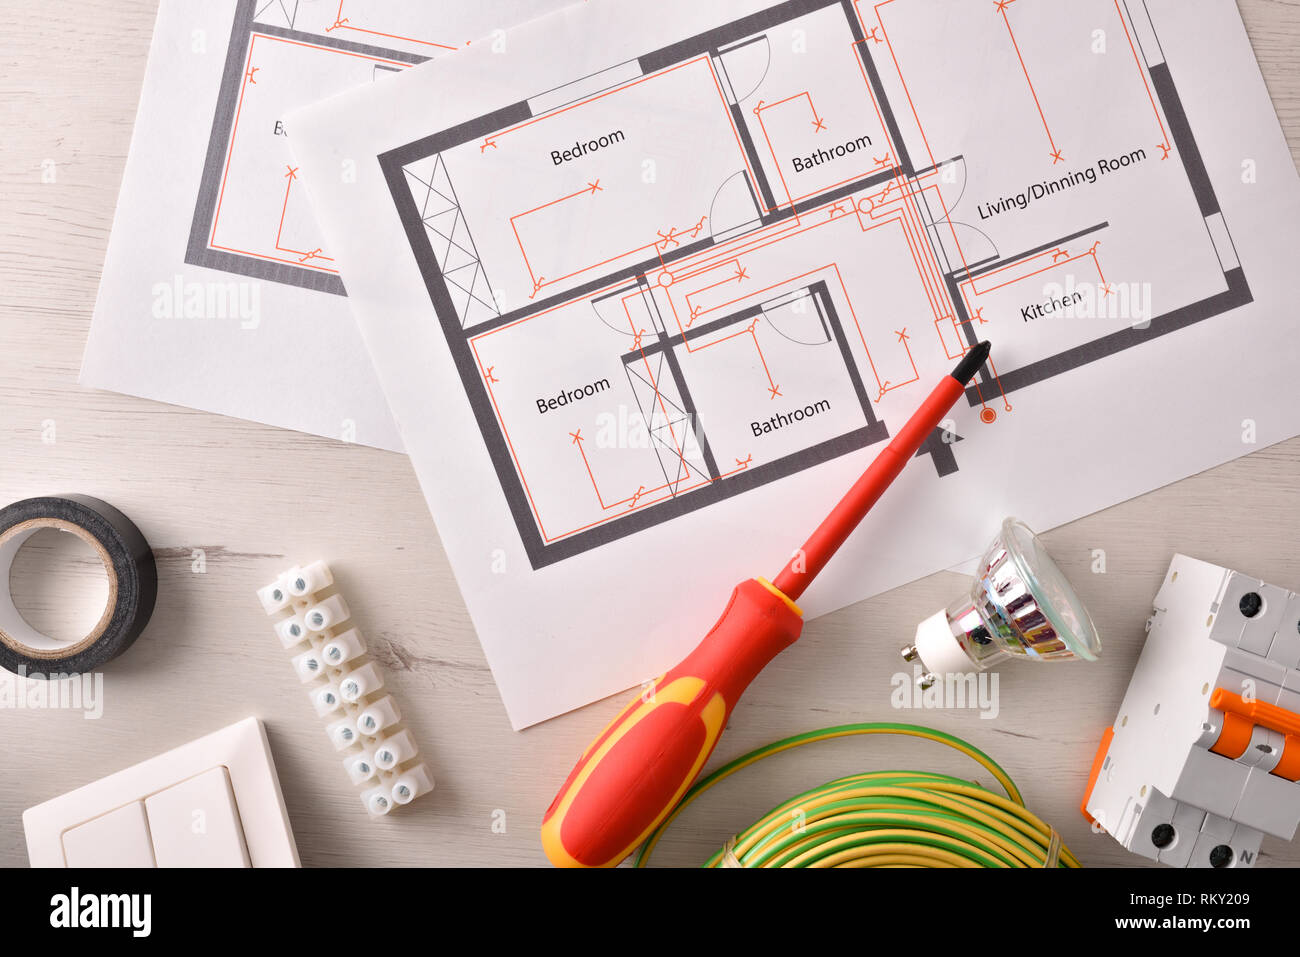 hight resolution of electrical tools for housing installation general view horizontal composition top view stock